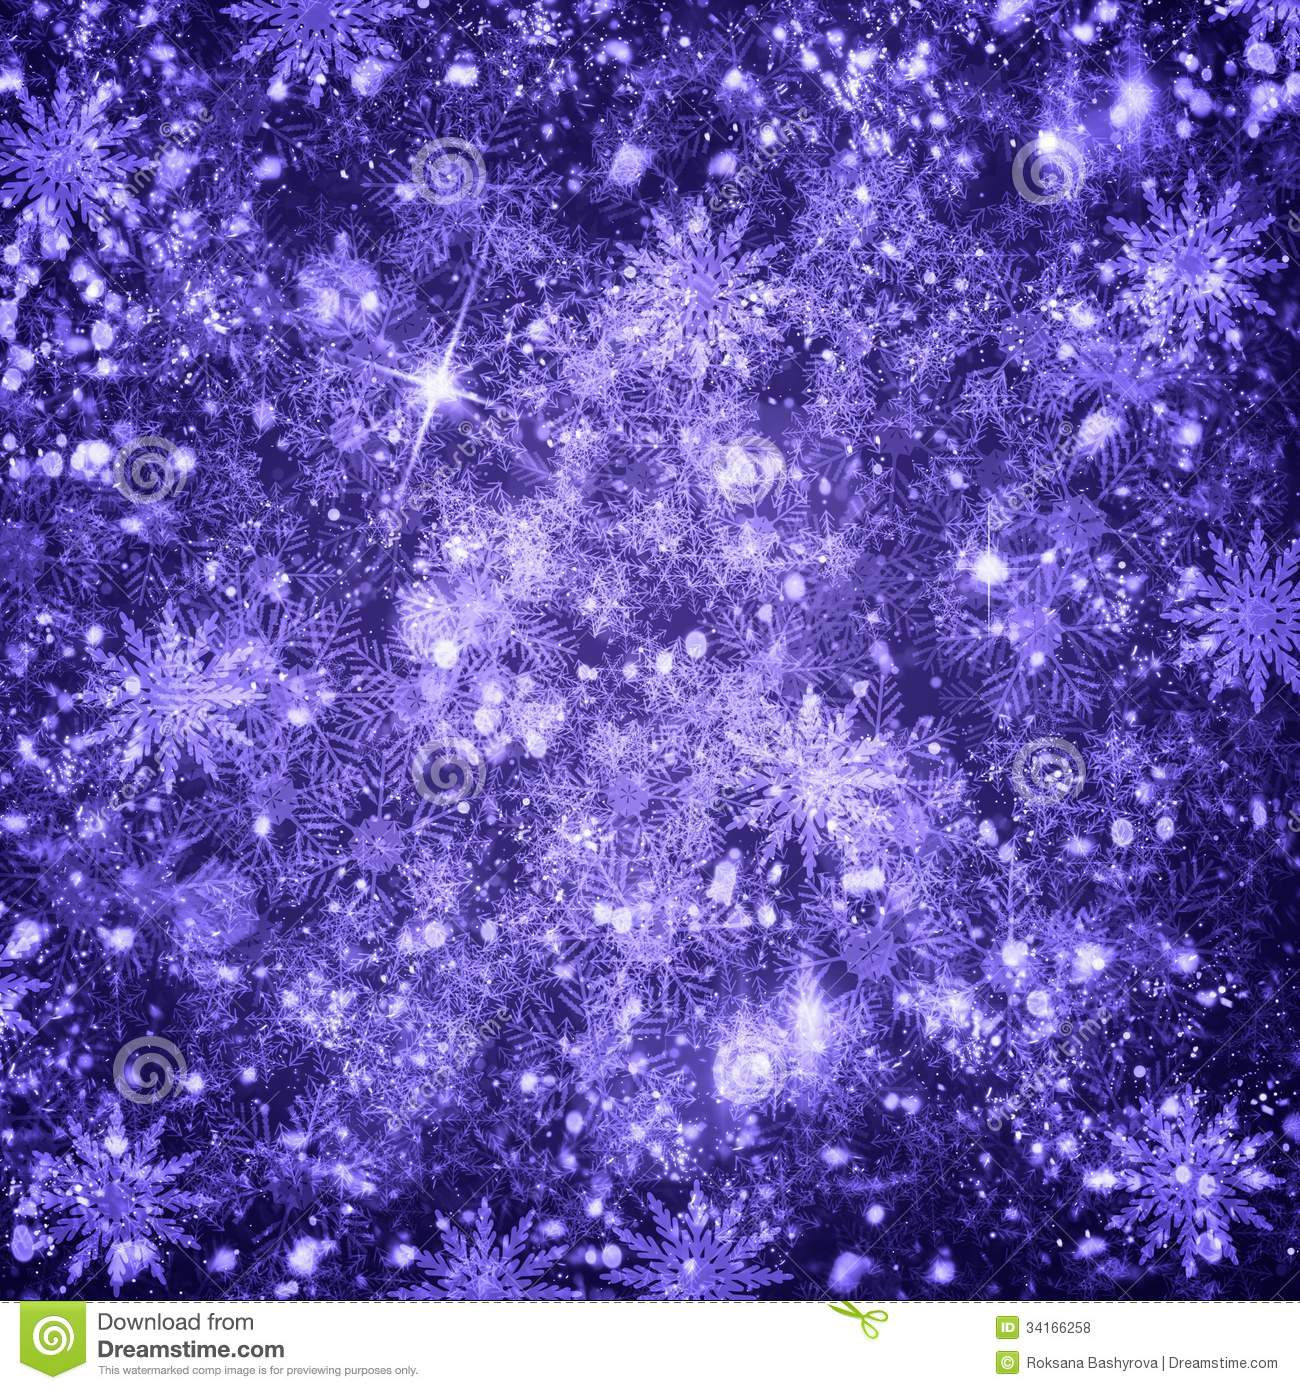 Free 3d Snow Falling Wallpaper Christmas Snow Background Royalty Free Stock Photos